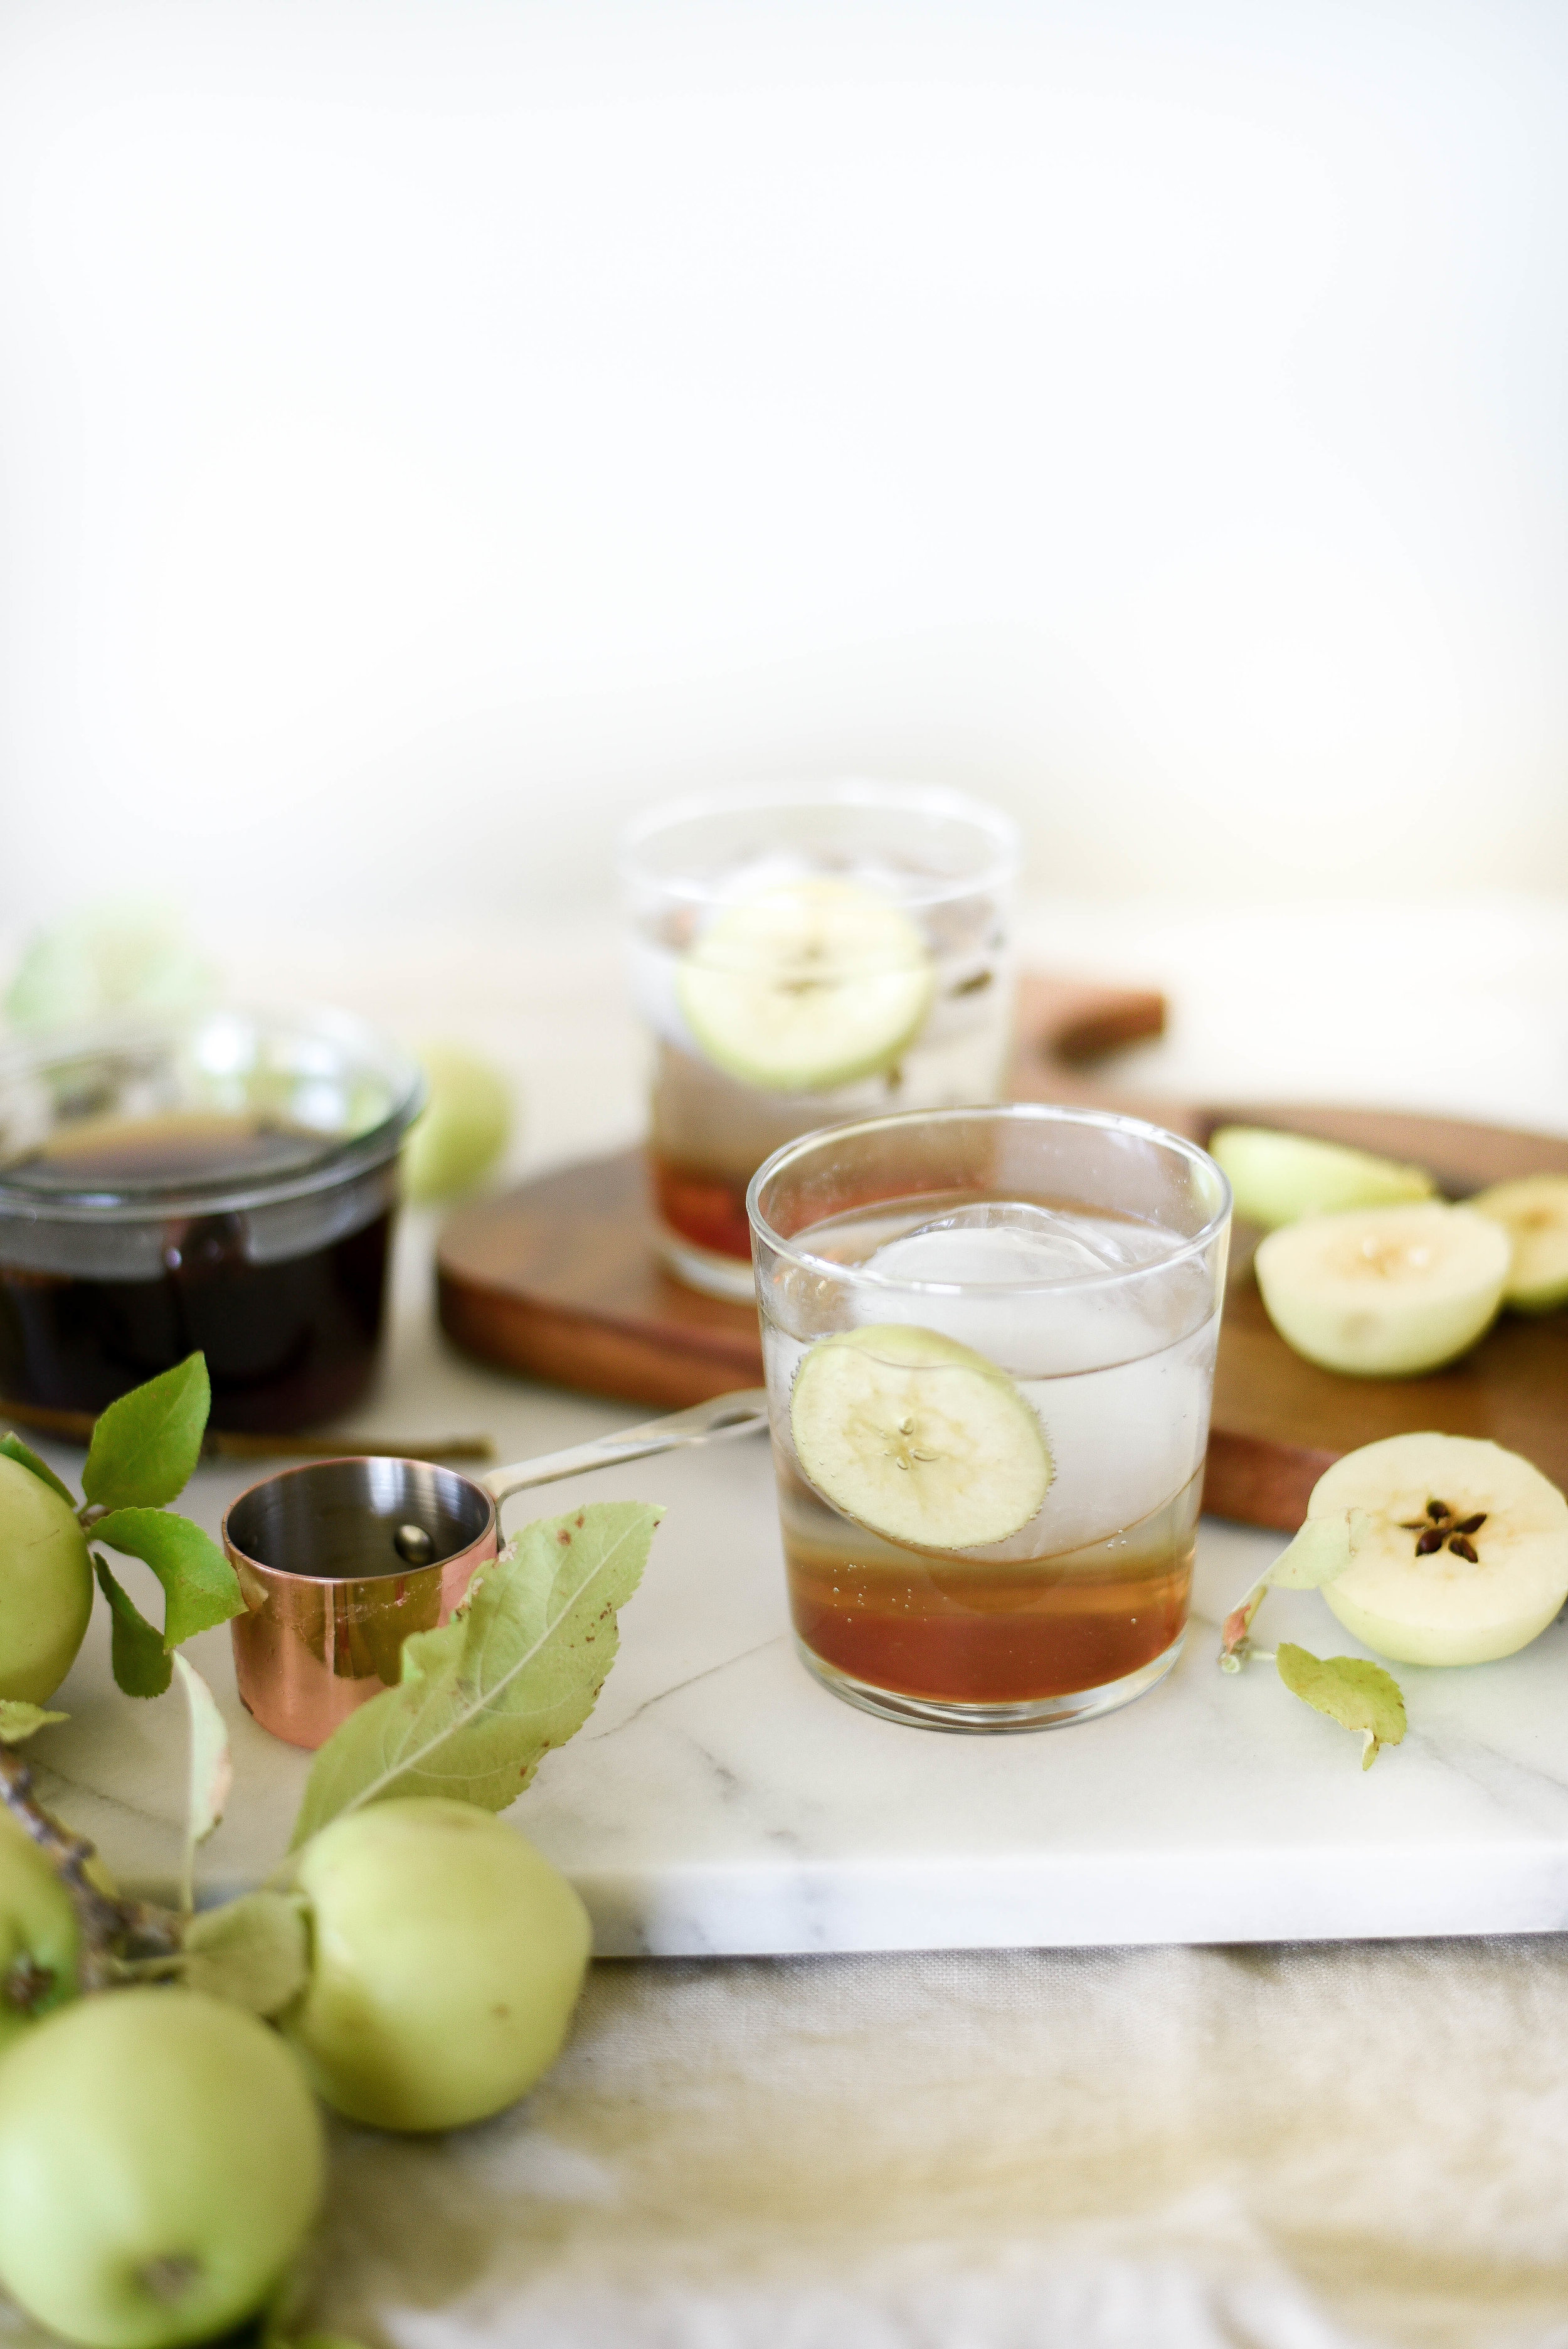 Apple spiced fall drink recipe (great for thanksgiving!) - boxwoodavenue.com